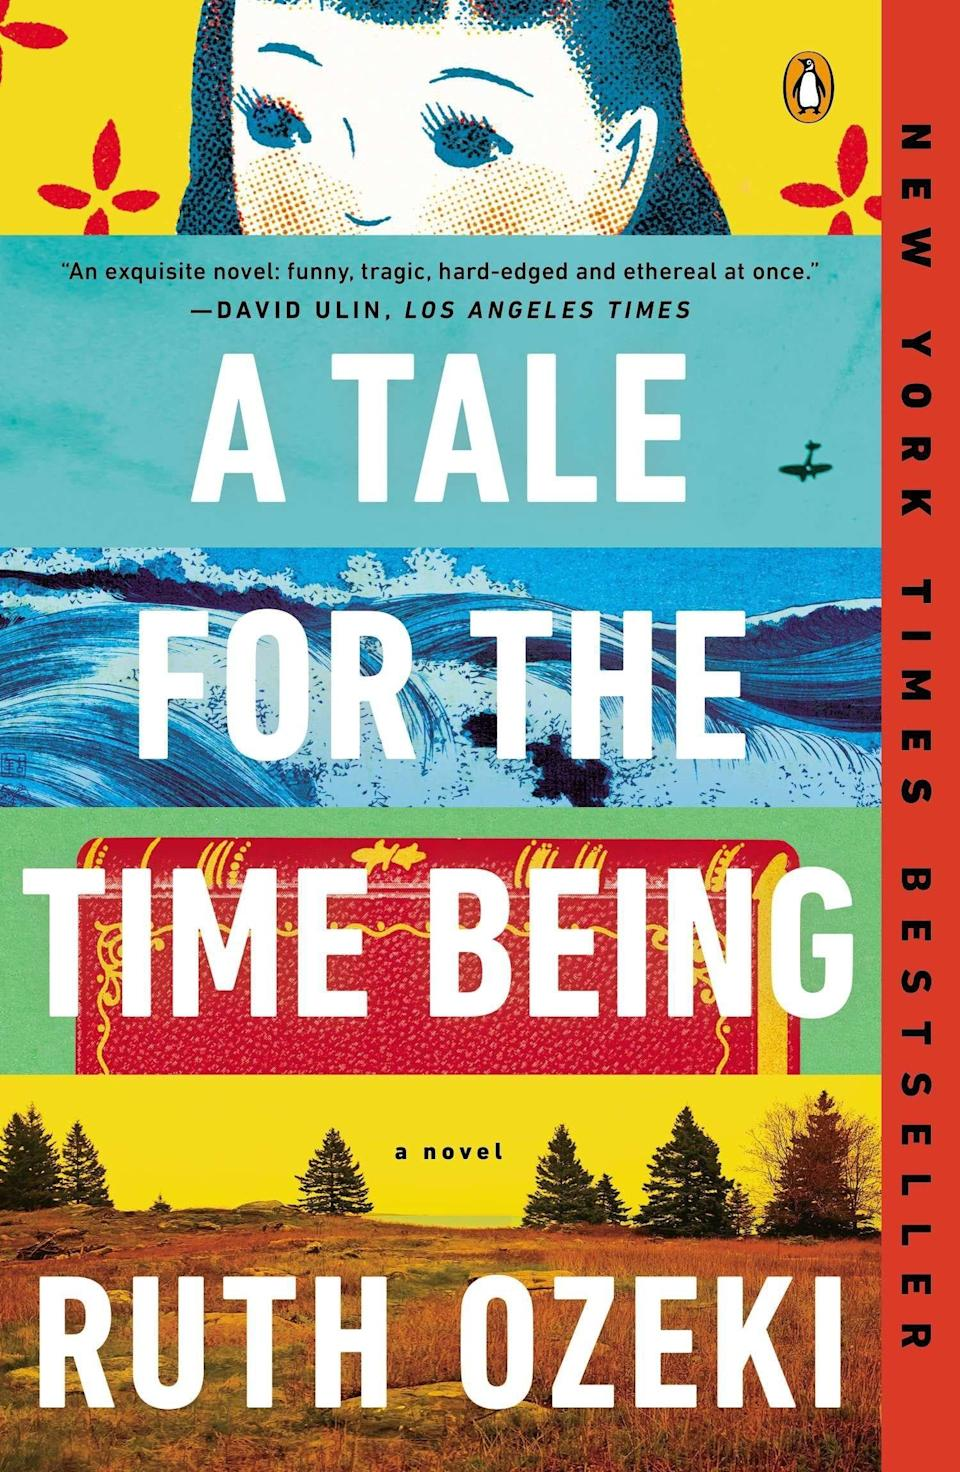 I'm also a devotee of Ruth Ozeki's, and I love <em>A Tale for the Time Being</em> (though she is also Canadian). Ozeki's novel is sui generis—it's a playful yet tragic story of a Japanese teenager who's desperately lonely after moving from Sunnyvale, California, to Tokyo, and is struggling to feel at home, dealing with bullying and deep loneliness. An author named Ruth encounters the teenager's diary washed up on the shores of Vancouver Island in Canada and develops an obsessive relationship to the material. From there, we also somehow get musings on <em>kawaii</em> culture, zazen meditation, Heidegger, Dōgen, a 104-year-old Buddhist nun, quantum physics, environmentalism, marriage, Proust, and a lot more. —<em>S.S.</em>